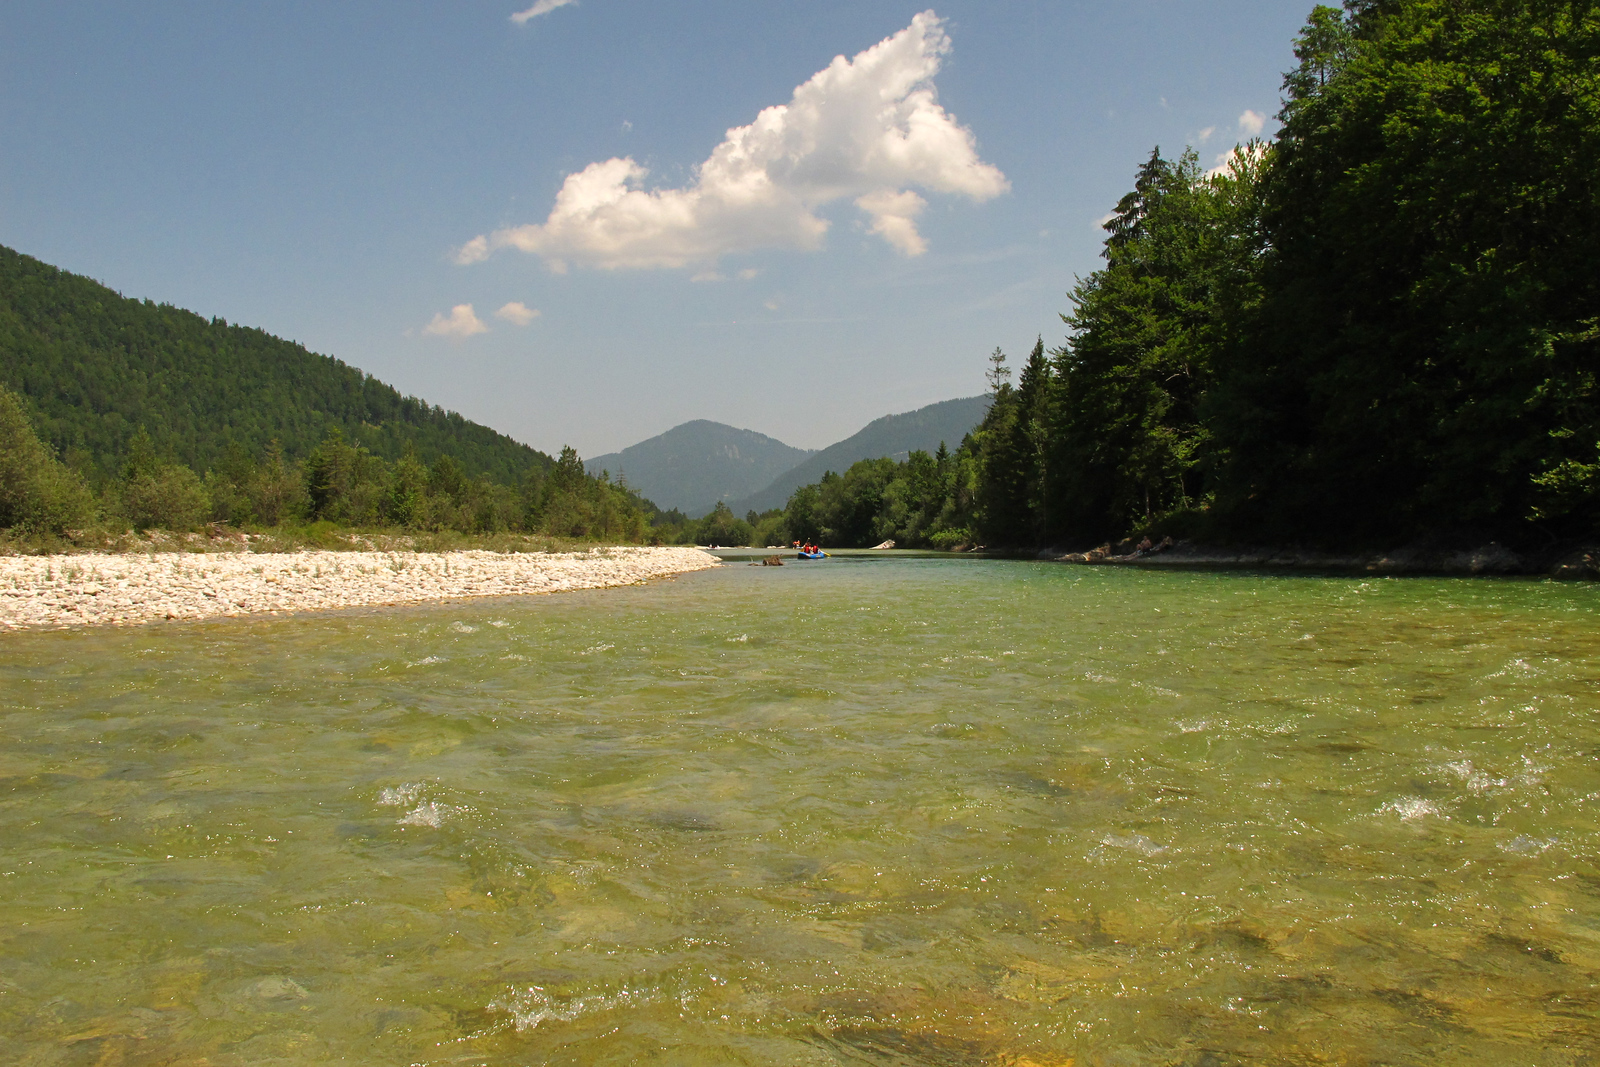 Canoeing on the Isar between Sylversteinsee and Bad Tölz